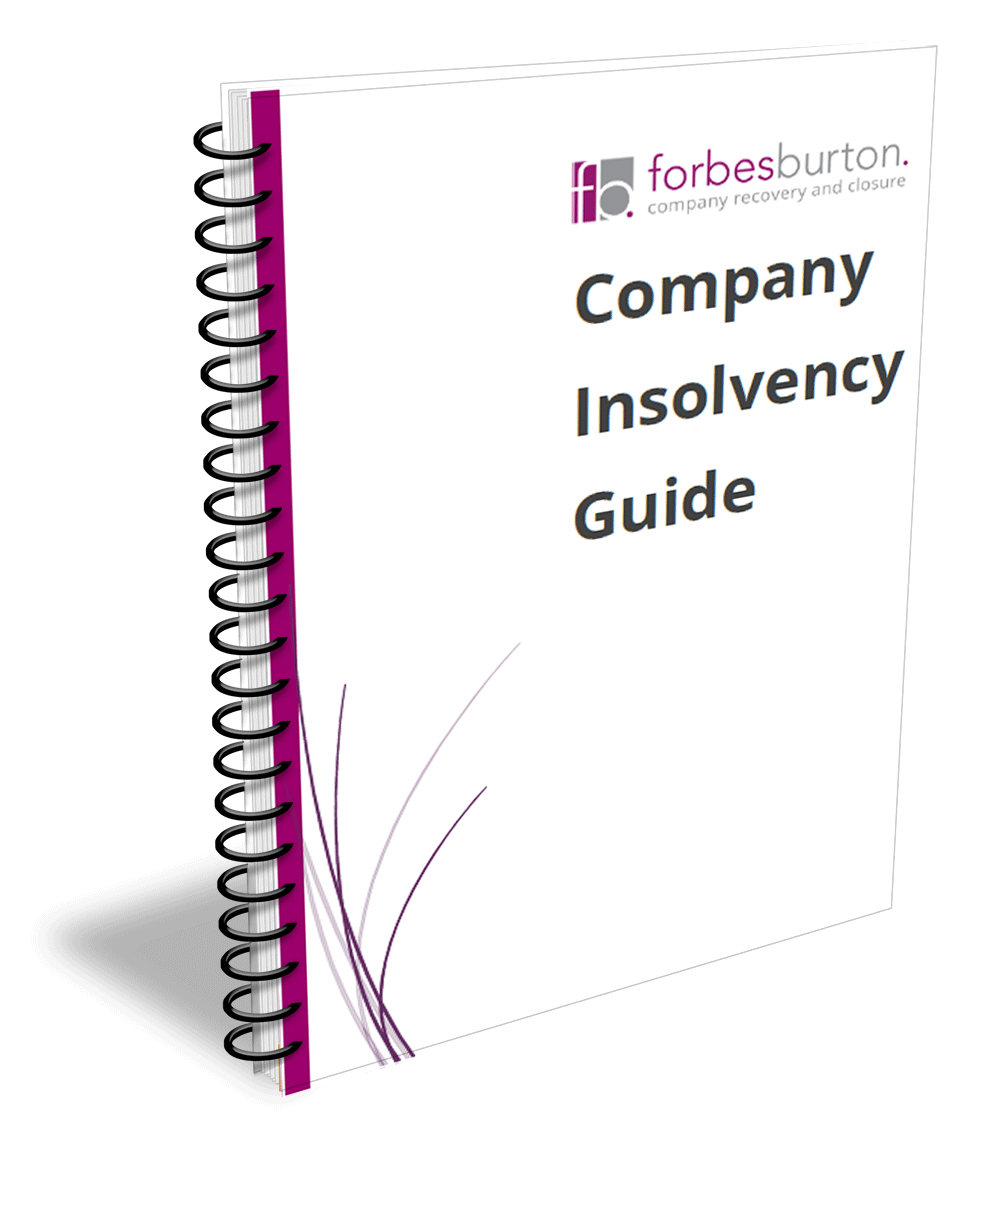 company insolvency guide cover